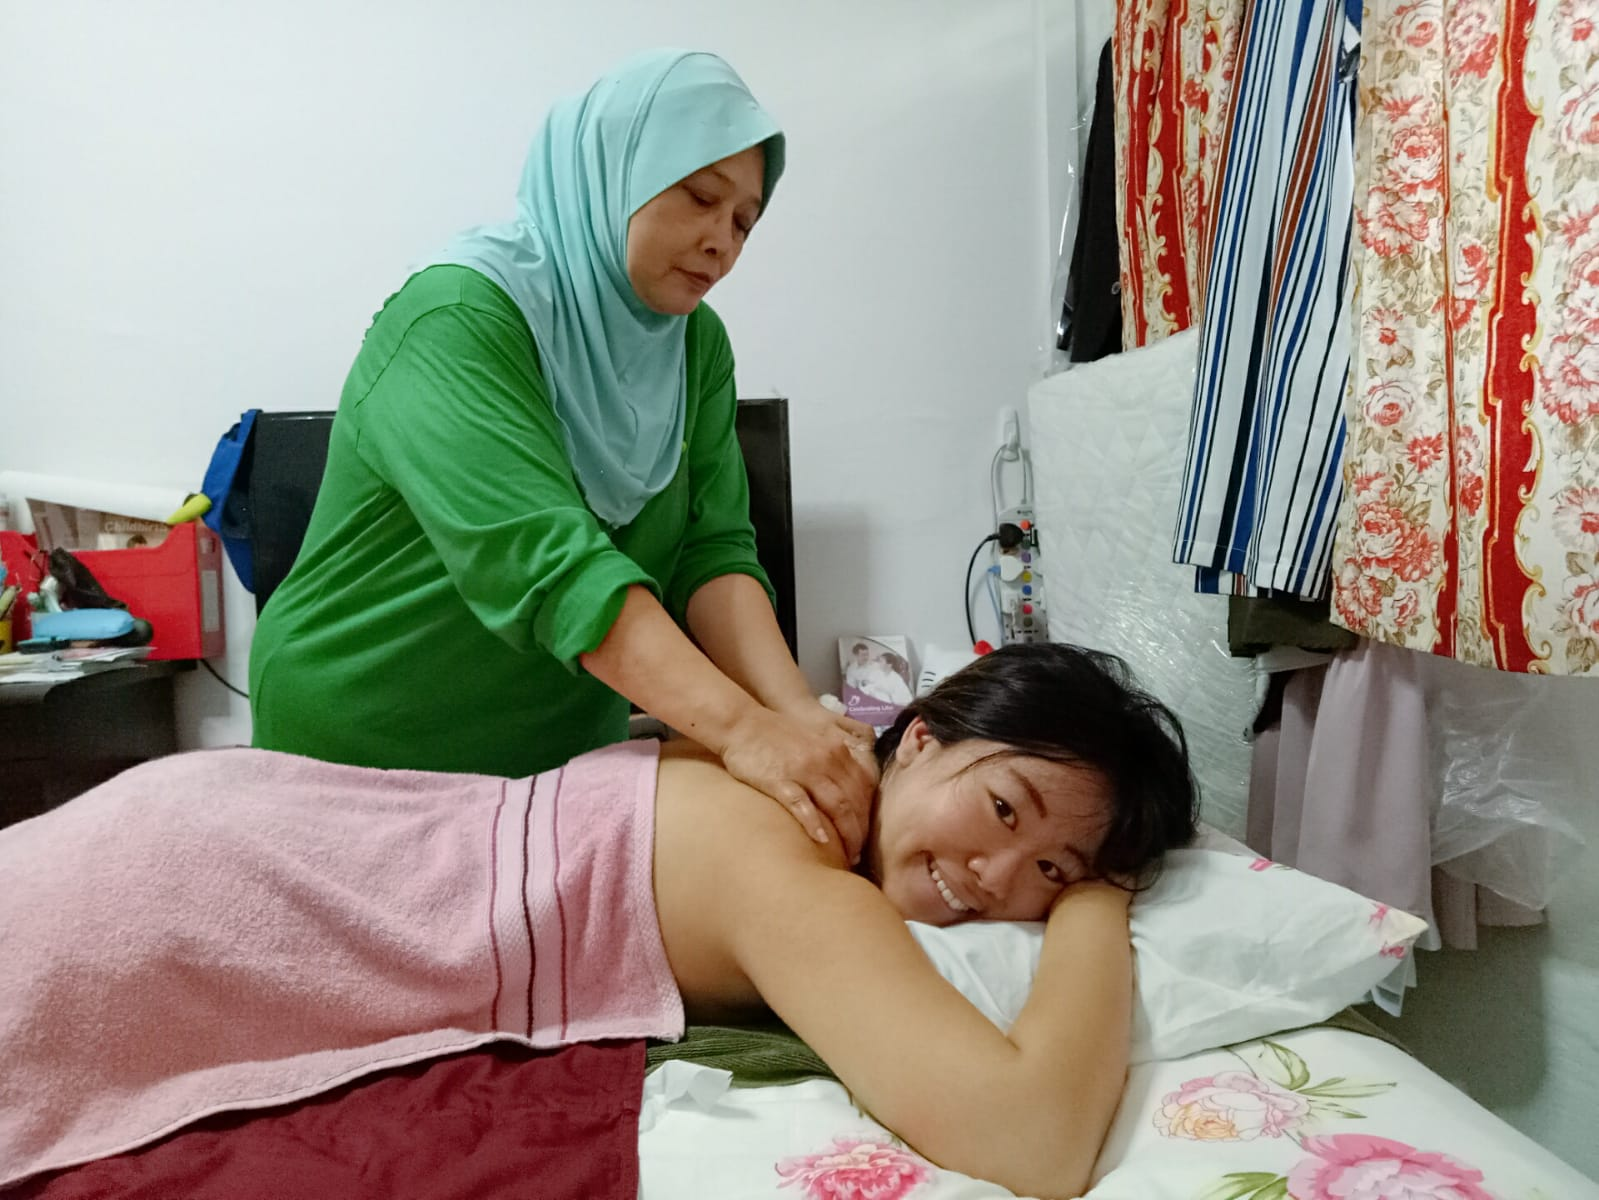 All Babe Massage prenatal and postnatal massages : are they worth it? my